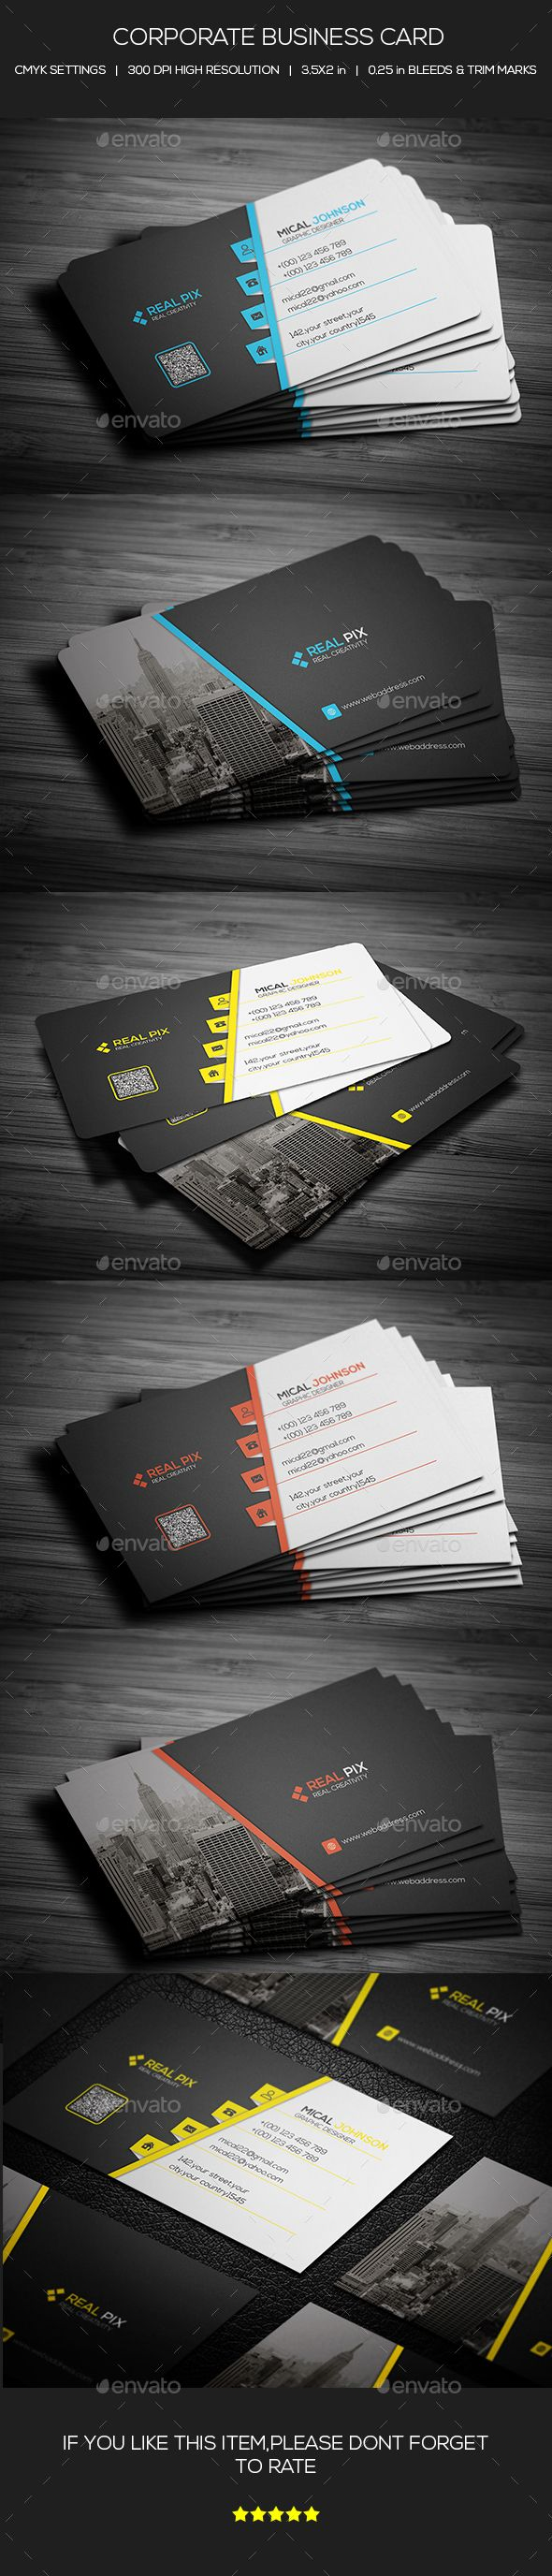 542 best business card images on pinterest business card design business card design template business cards print templates psd download here https wajeb Choice Image